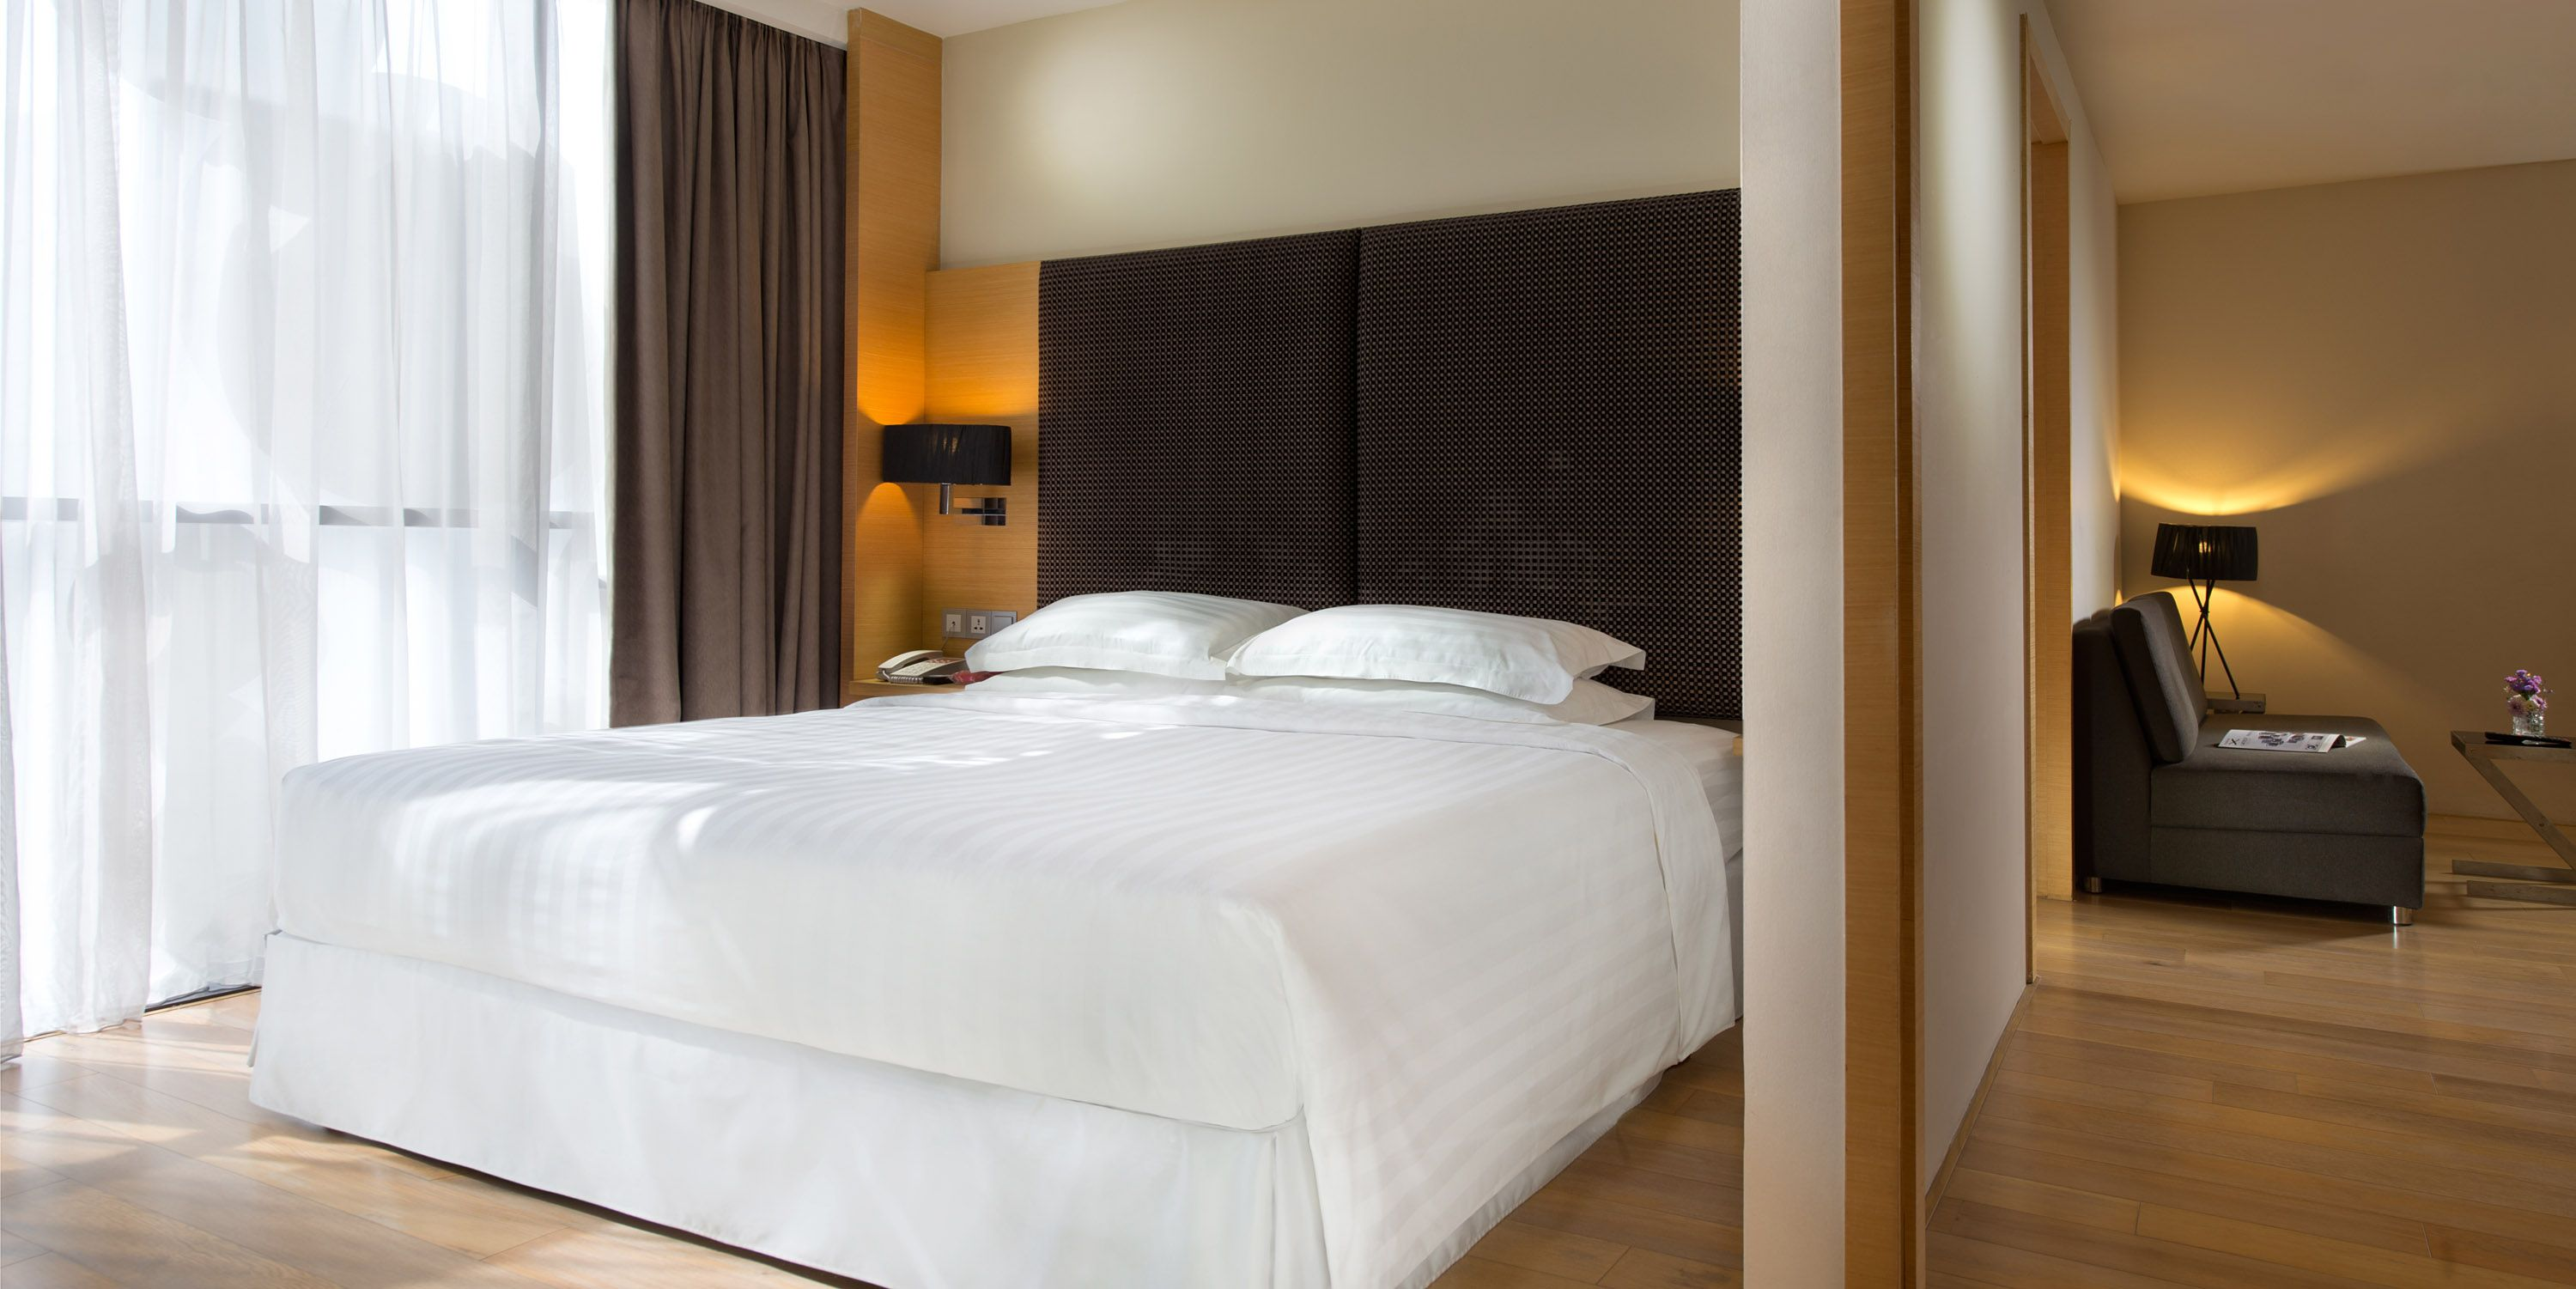 Pin by Empire Hotel Subang on Premier Clique Bed next